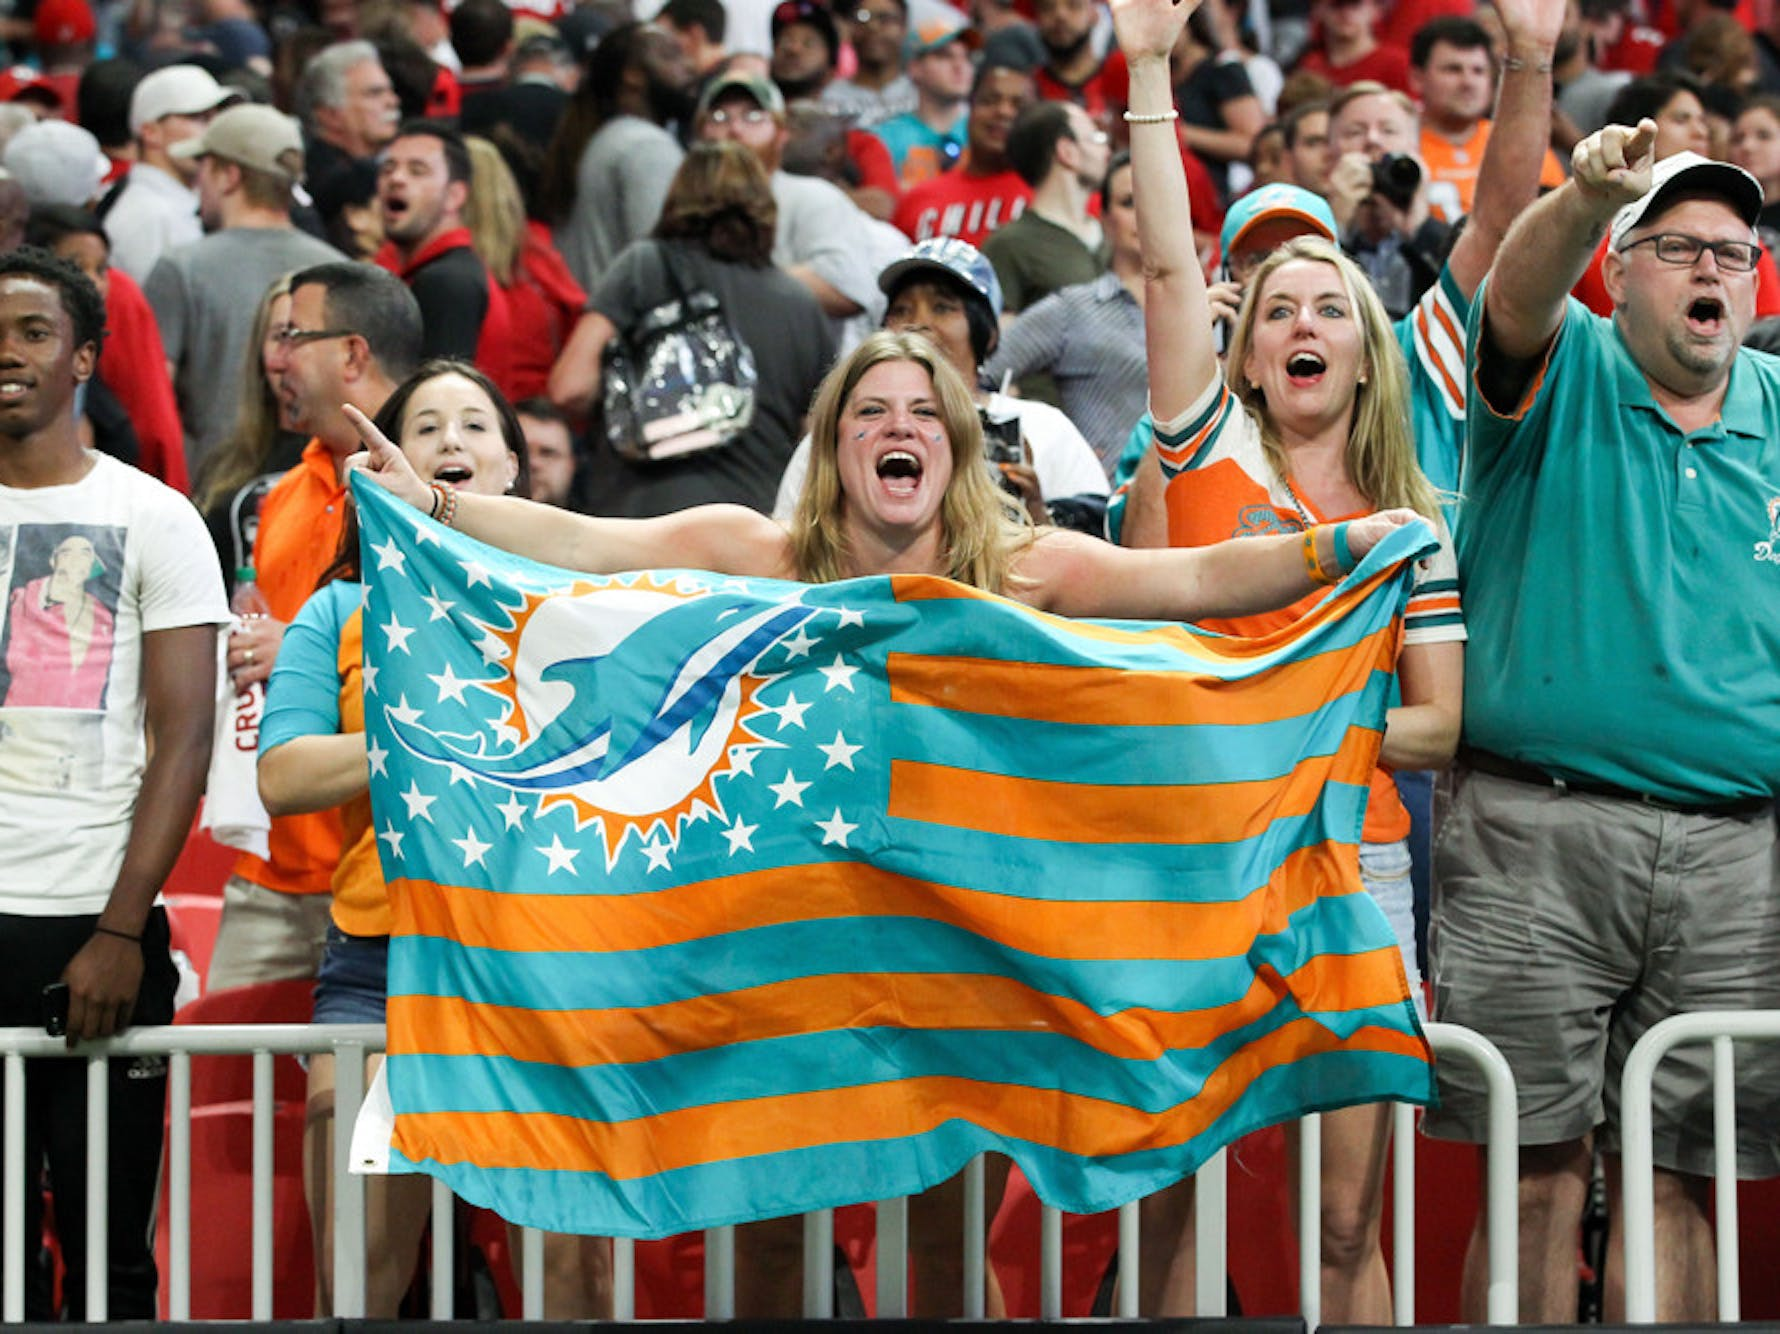 Miami Dolphins fans celebrate after the NFL game between the Miami Dolphins and the Atlanta Falcons on October 15, 2017 at the Mercedes-Benz Stadium in Atlanta, GA. Miami wins 20-17.